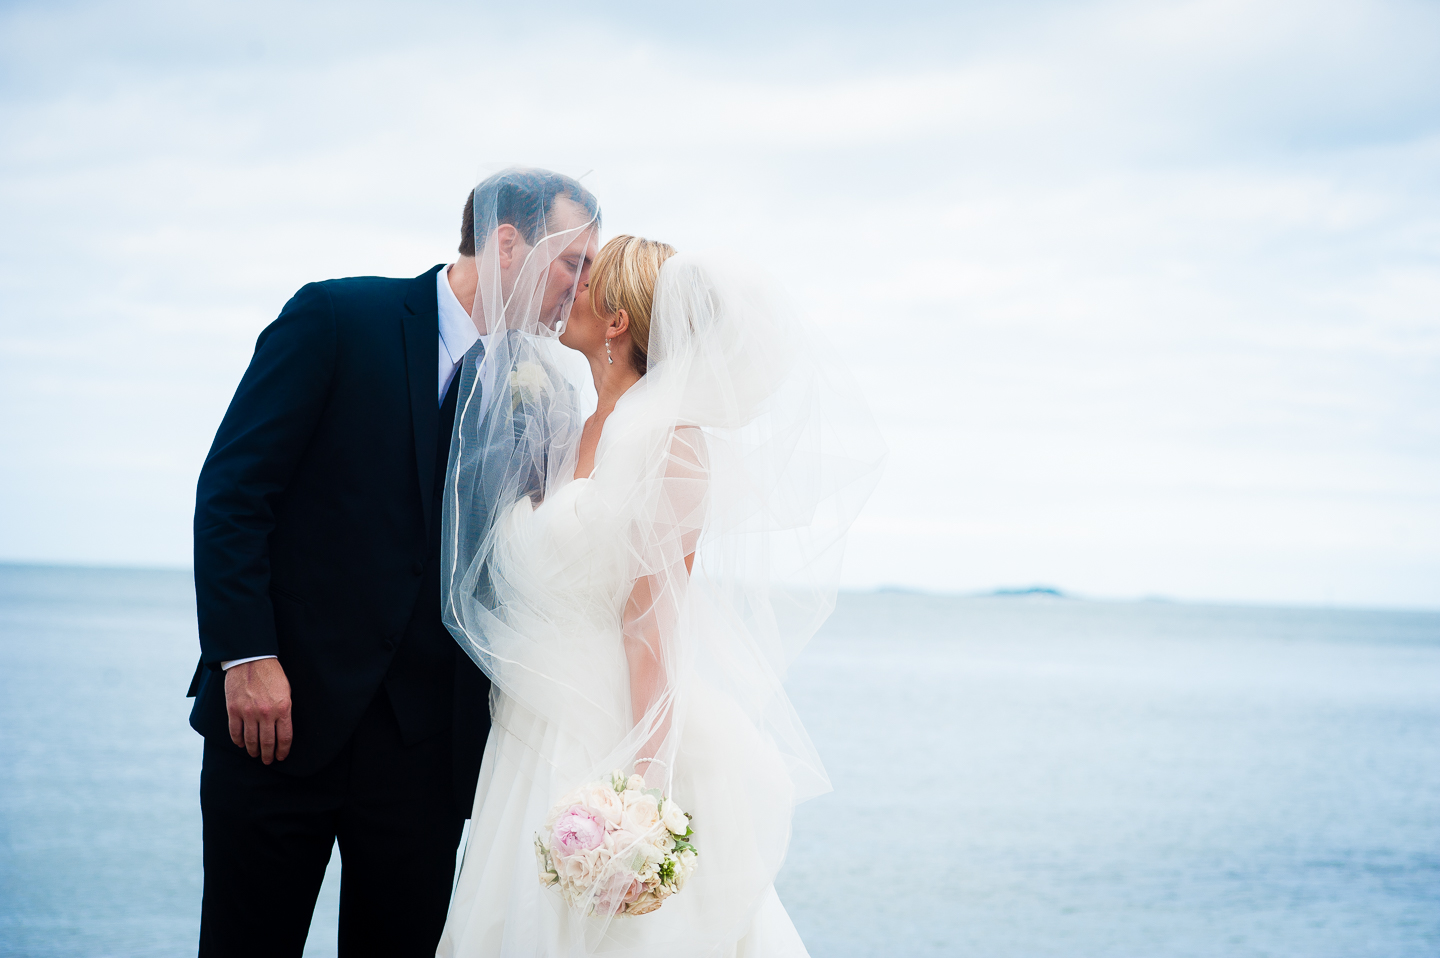 the groom wrapped in brides veil by the ocean